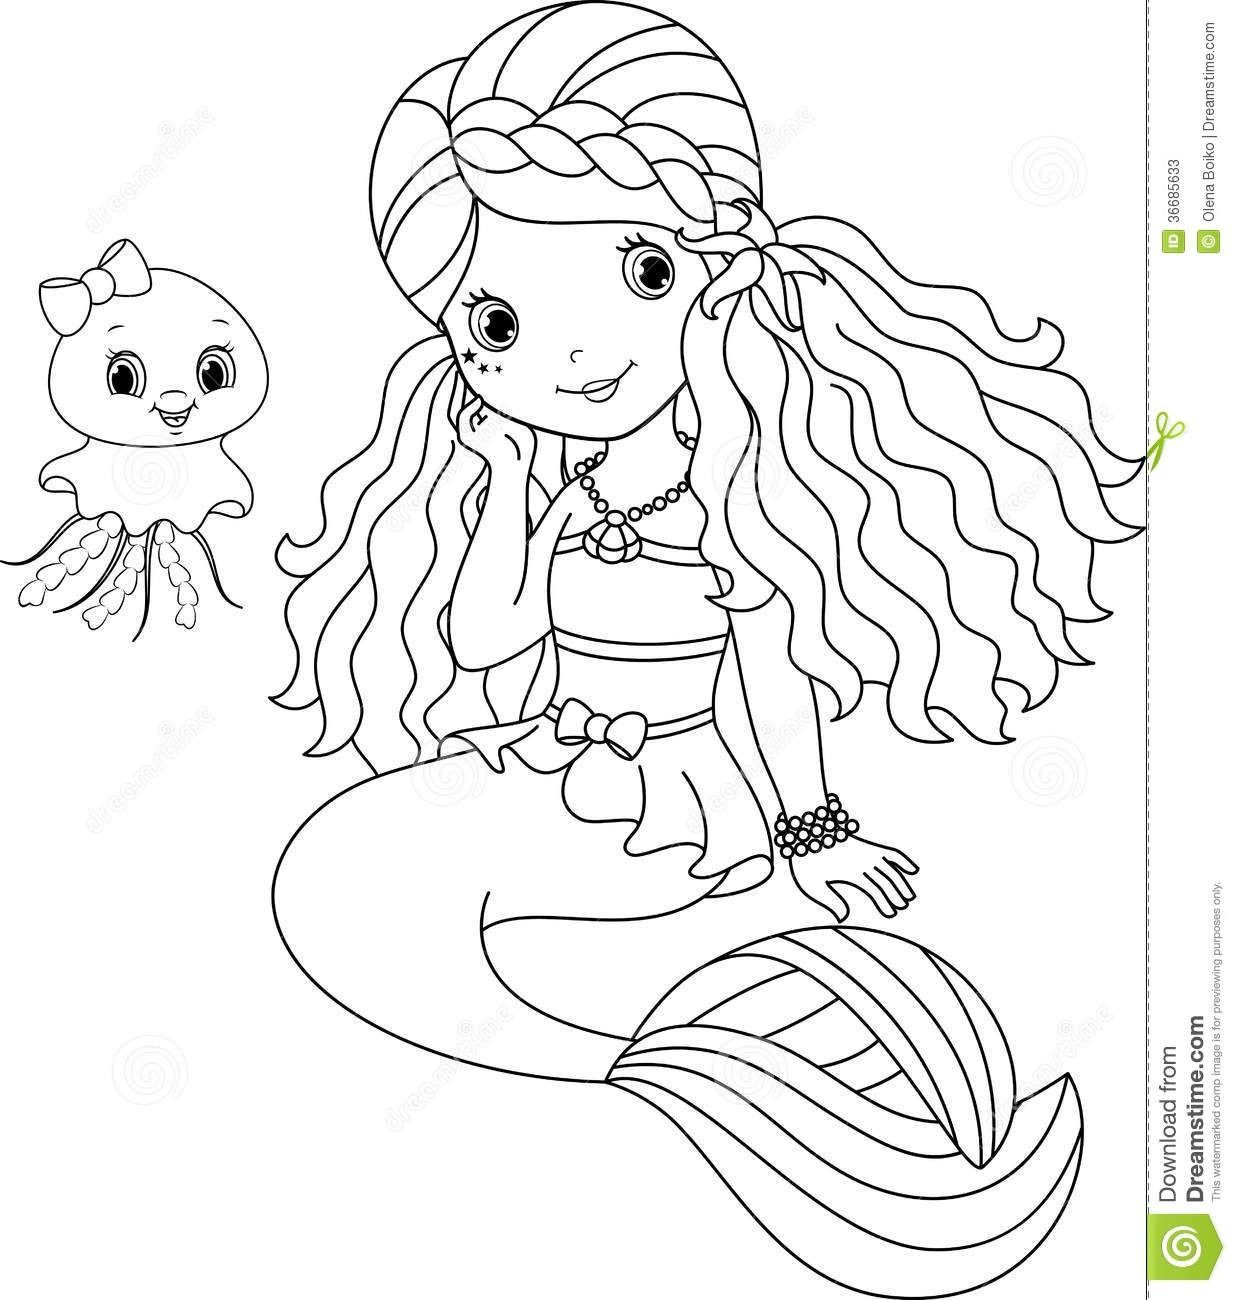 Free Printable Mermaid Coloring Pages Mermaid Coloring Pages Mermaid Coloring Book Ariel Coloring Pages